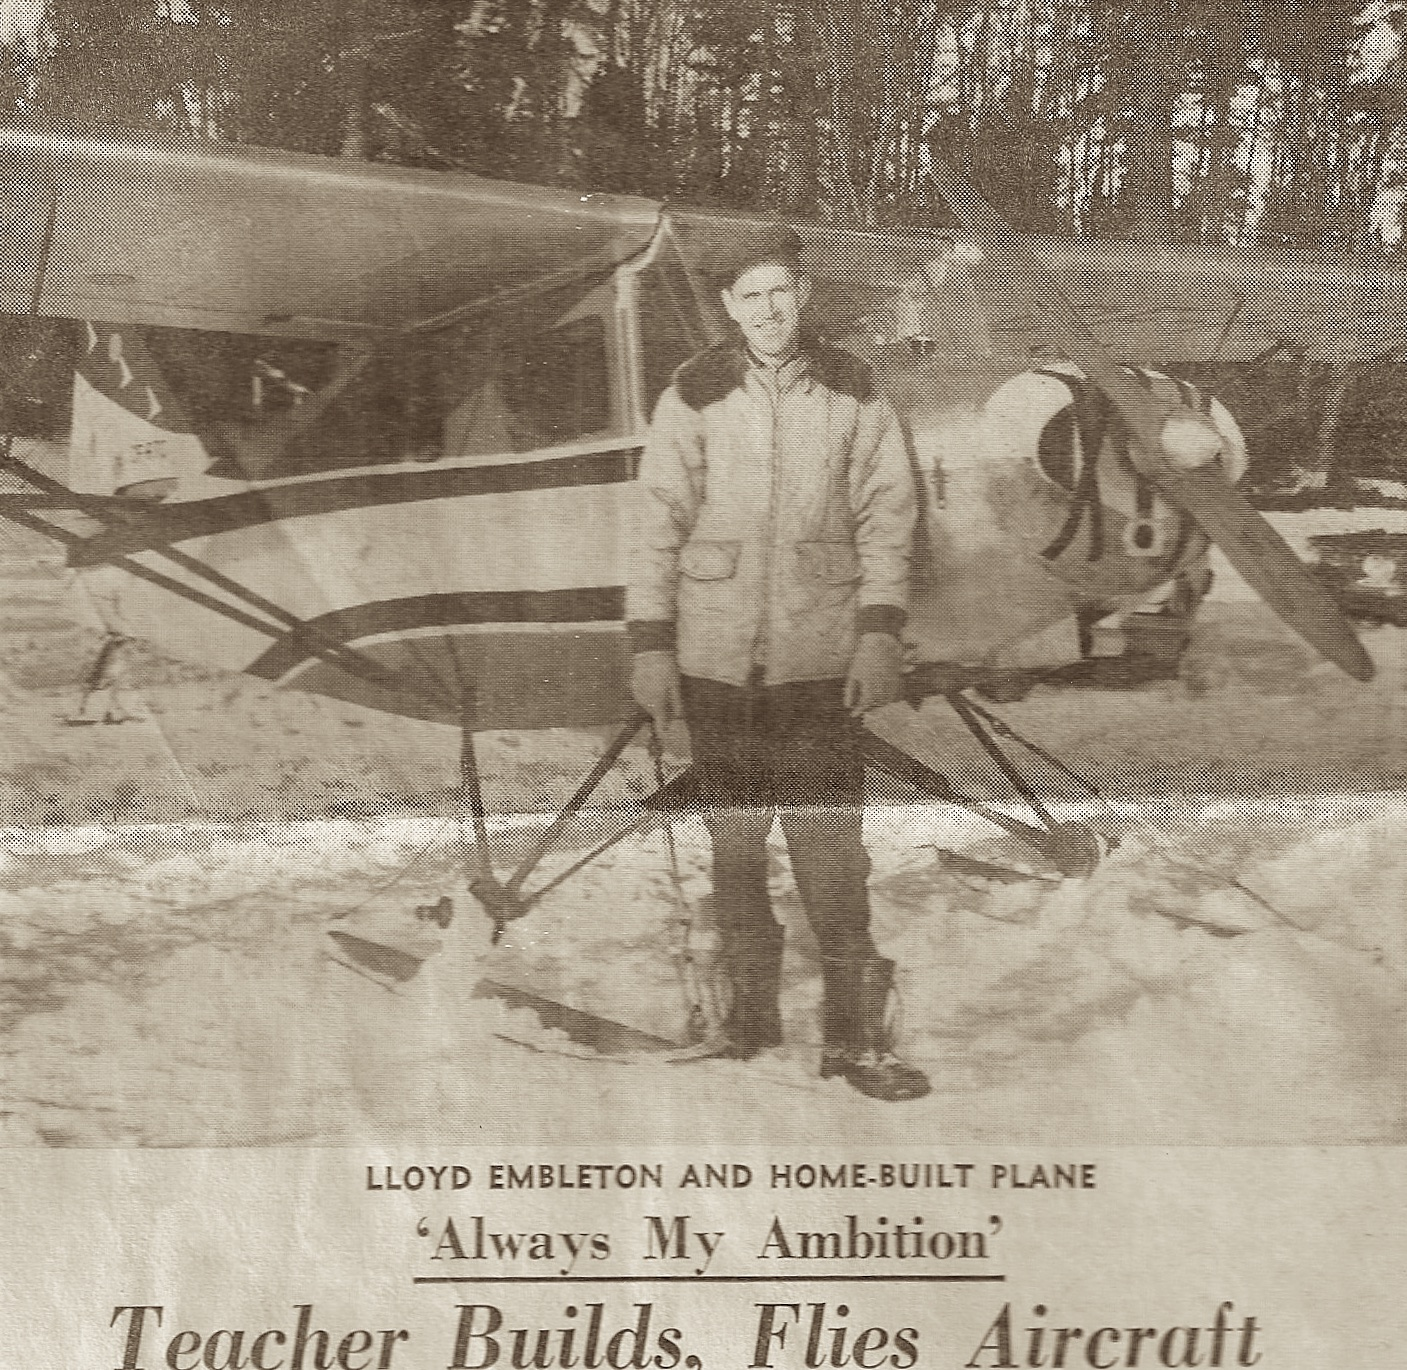 Lloyd Embelton and Home-Built Plane